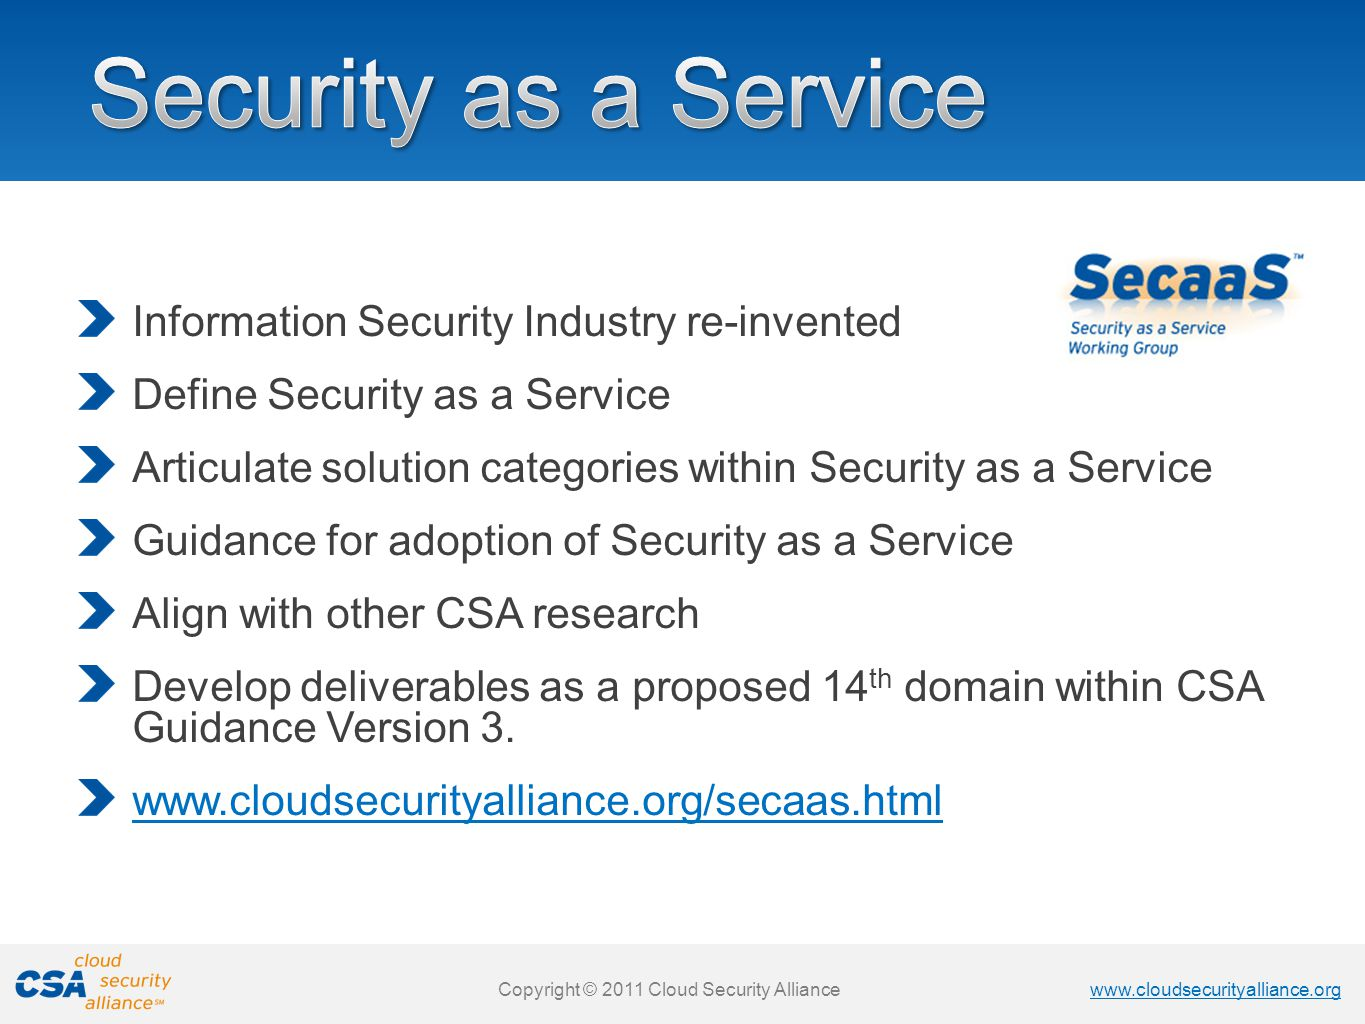 www.cloudsecurityalliance.org Copyright © 2011 Cloud Security Alliance www.cloudsecurityalliance.org Copyright © 2011 Cloud Security Alliance Information Security Industry re-invented Define Security as a Service Articulate solution categories within Security as a Service Guidance for adoption of Security as a Service Align with other CSA research Develop deliverables as a proposed 14 th domain within CSA Guidance Version 3.